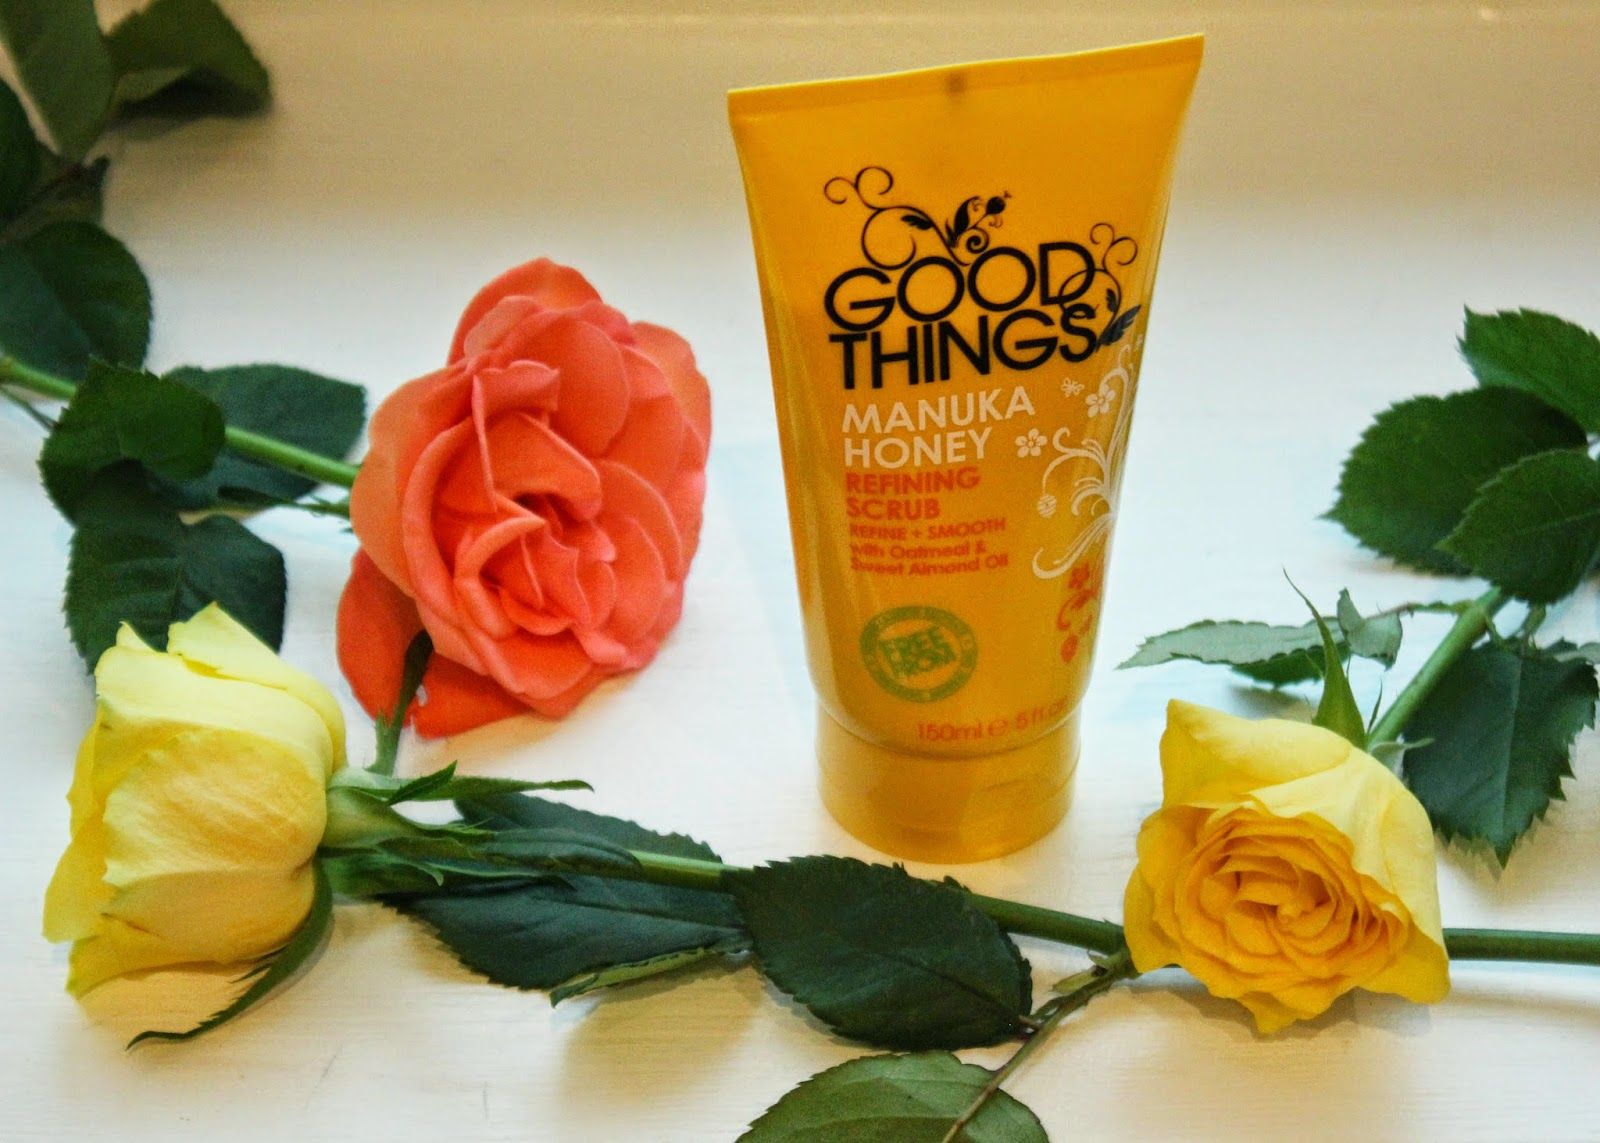 Good Things Manuka Honey Refining Scrub Review